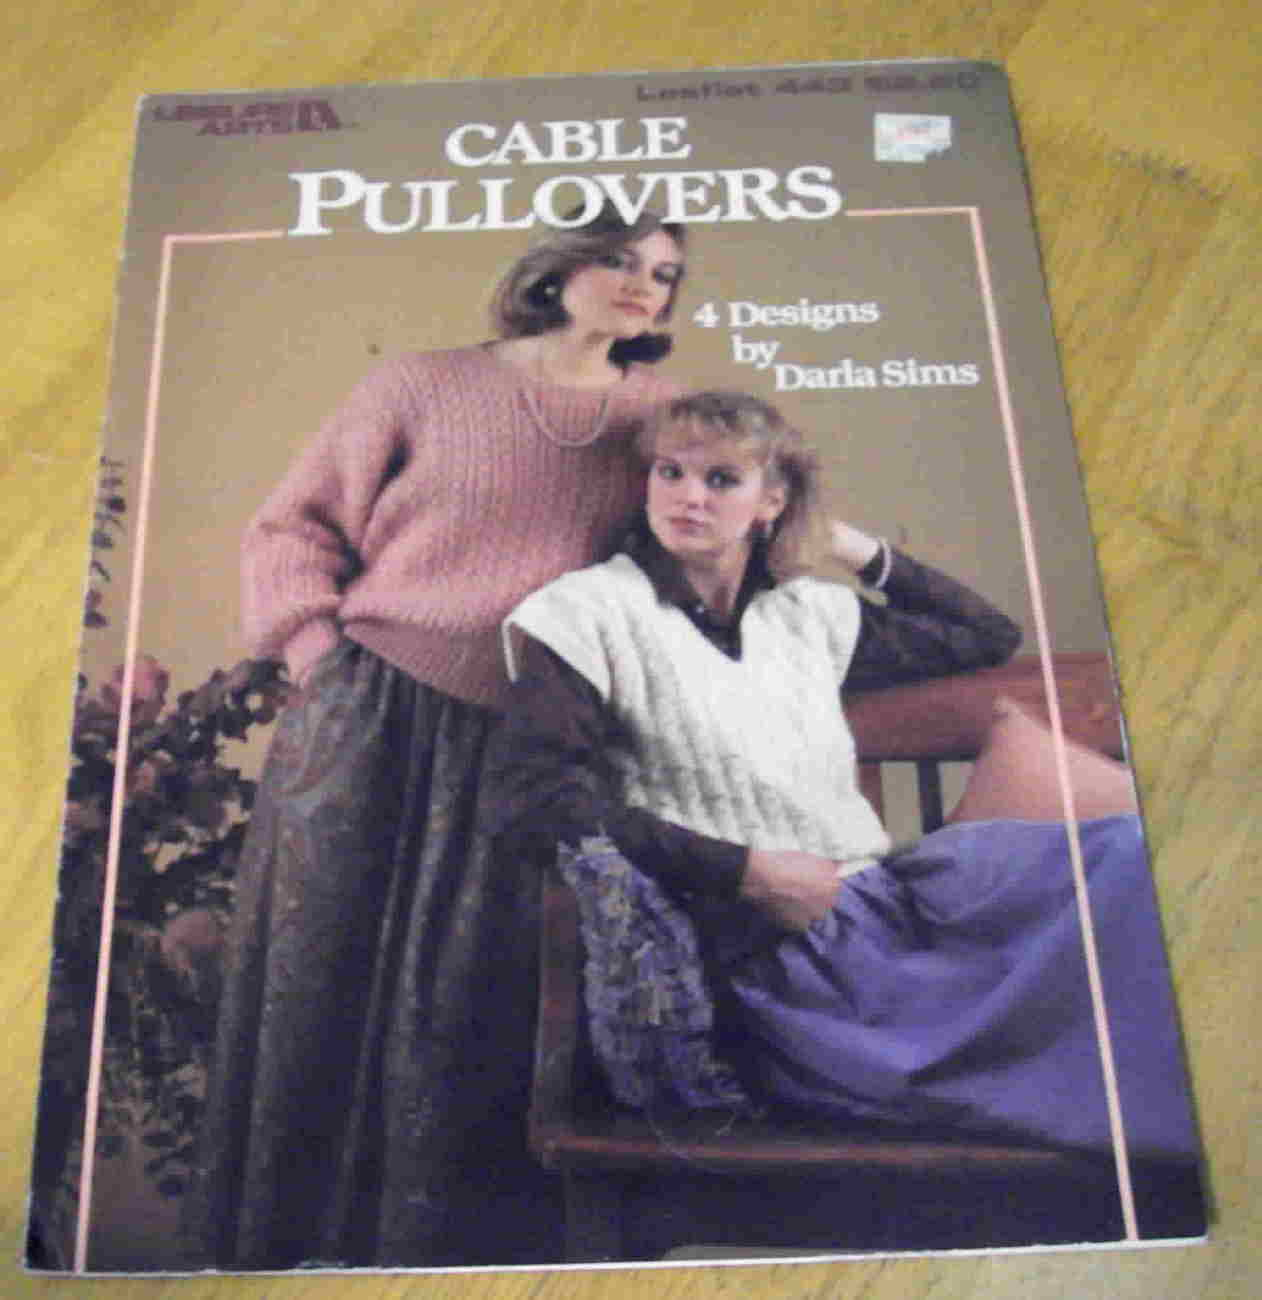 Cable Pullovers Knitting by Darla Sims